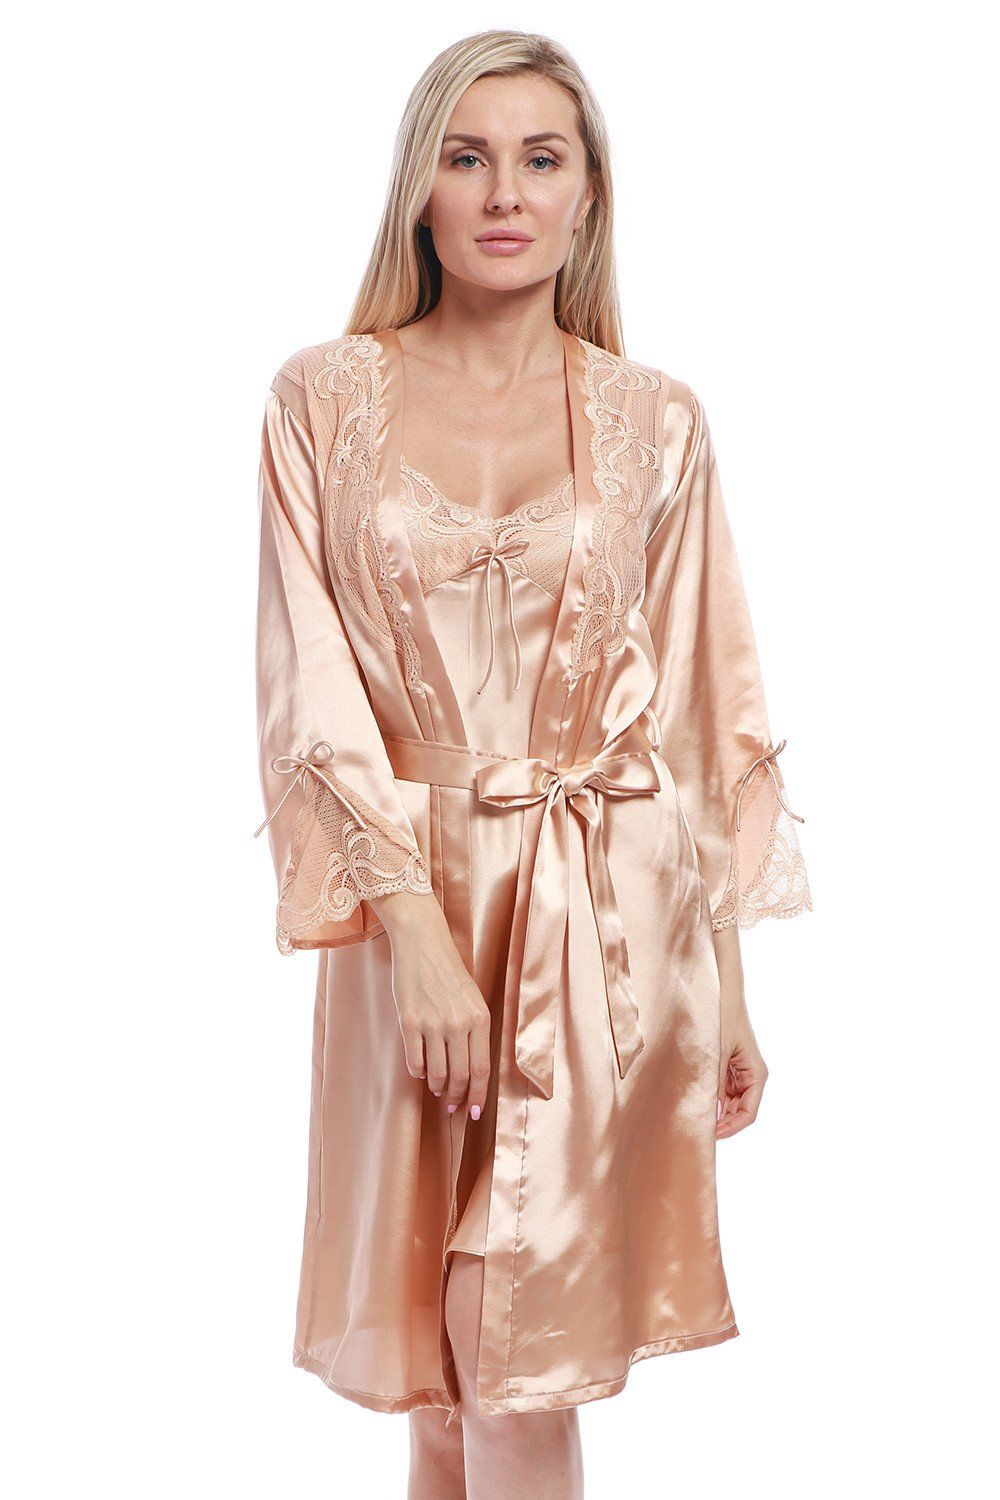 b9a1299441c0e BellisMira Women s Long Satin Robe Bridal Kimono Lace Trim Nightgown Soft  Pajamas Dressing Gown Sleepwear